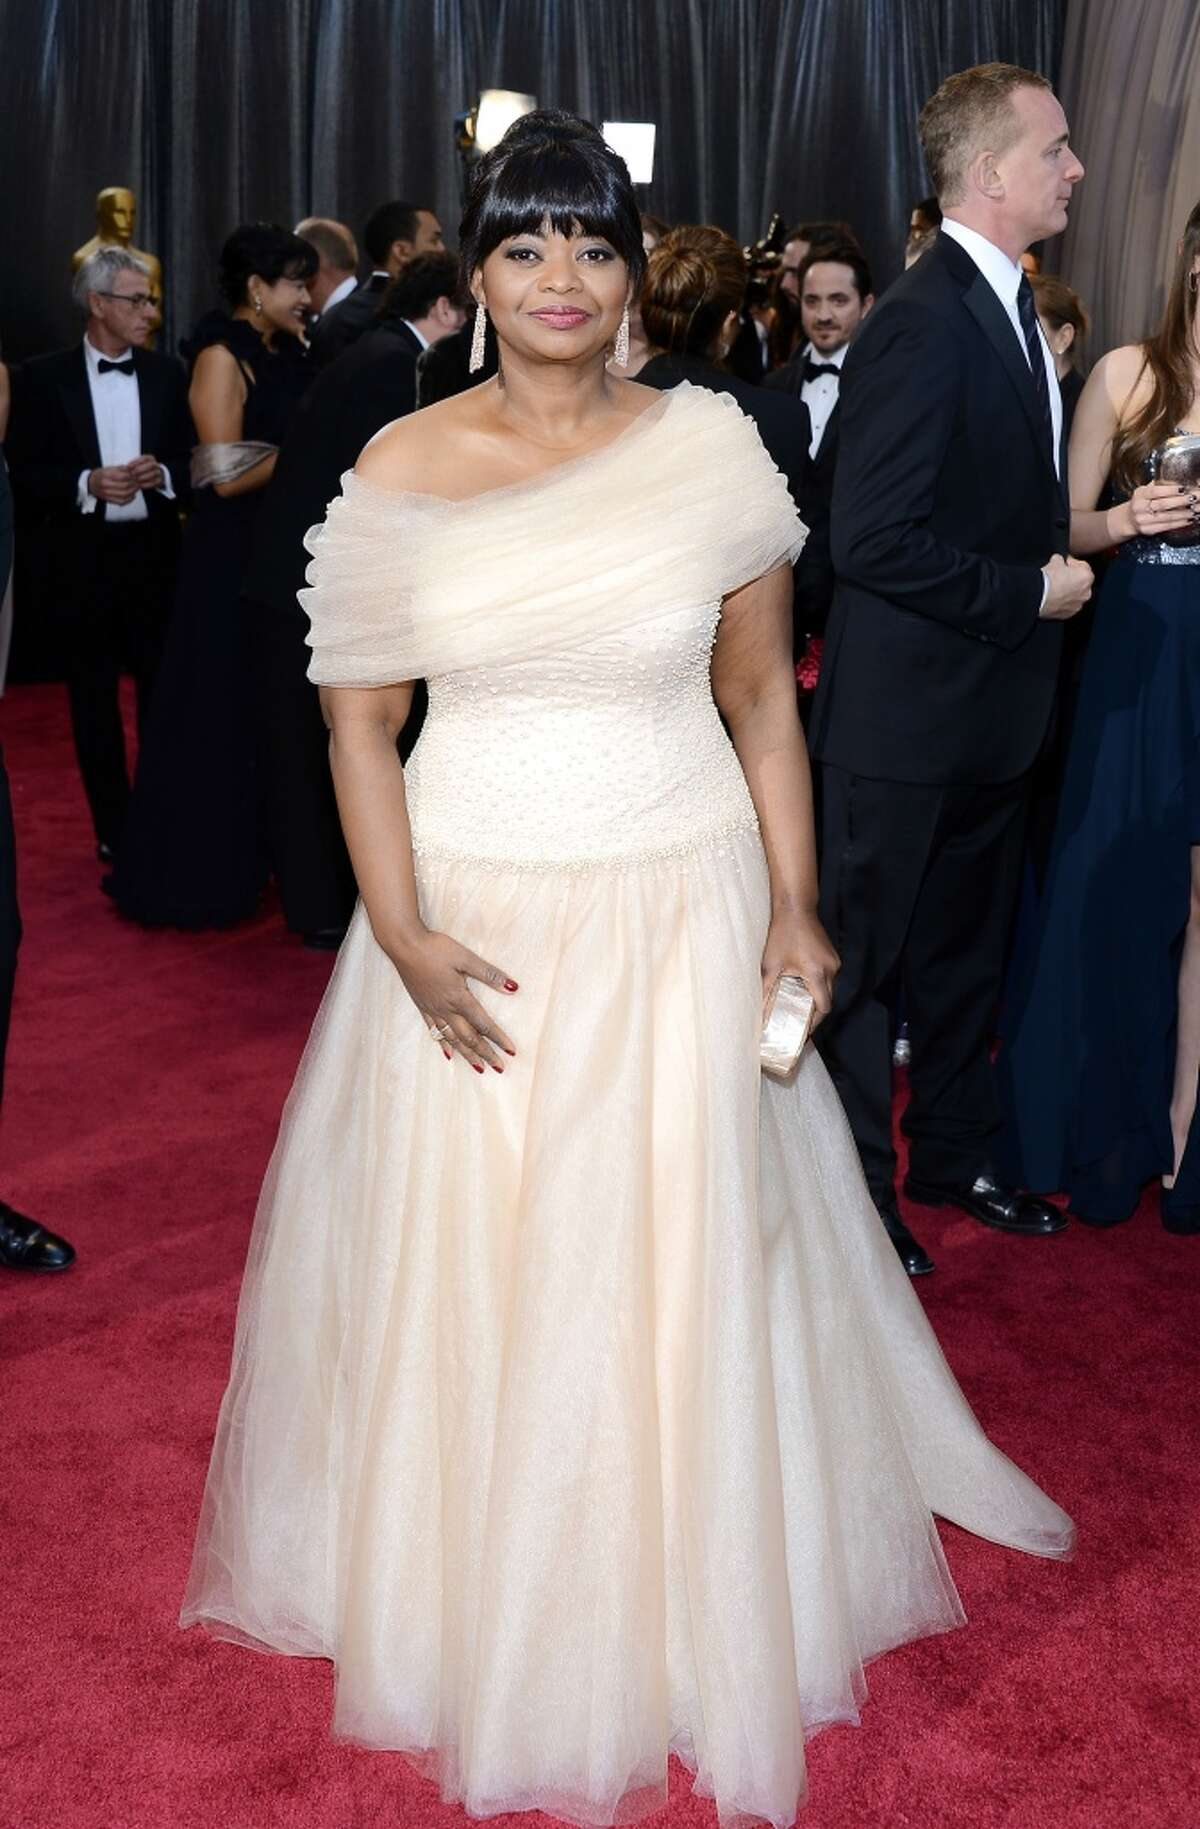 Best: Octavia Spencer We want to float away with her on her weightless cloud of awesomeness.